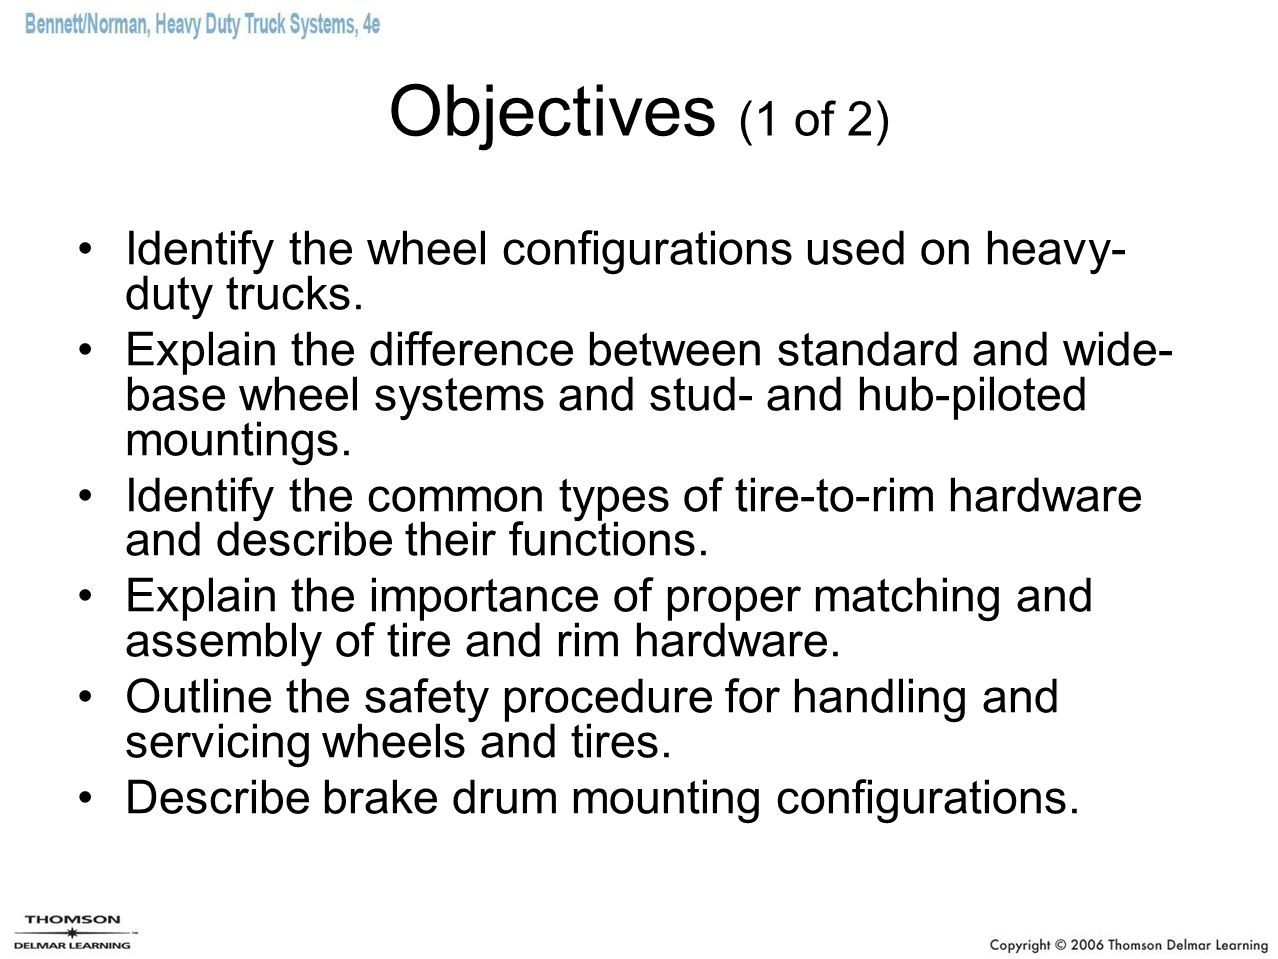 Objectives (1 of 2) Identify the wheel configurations used on heavy-duty trucks.